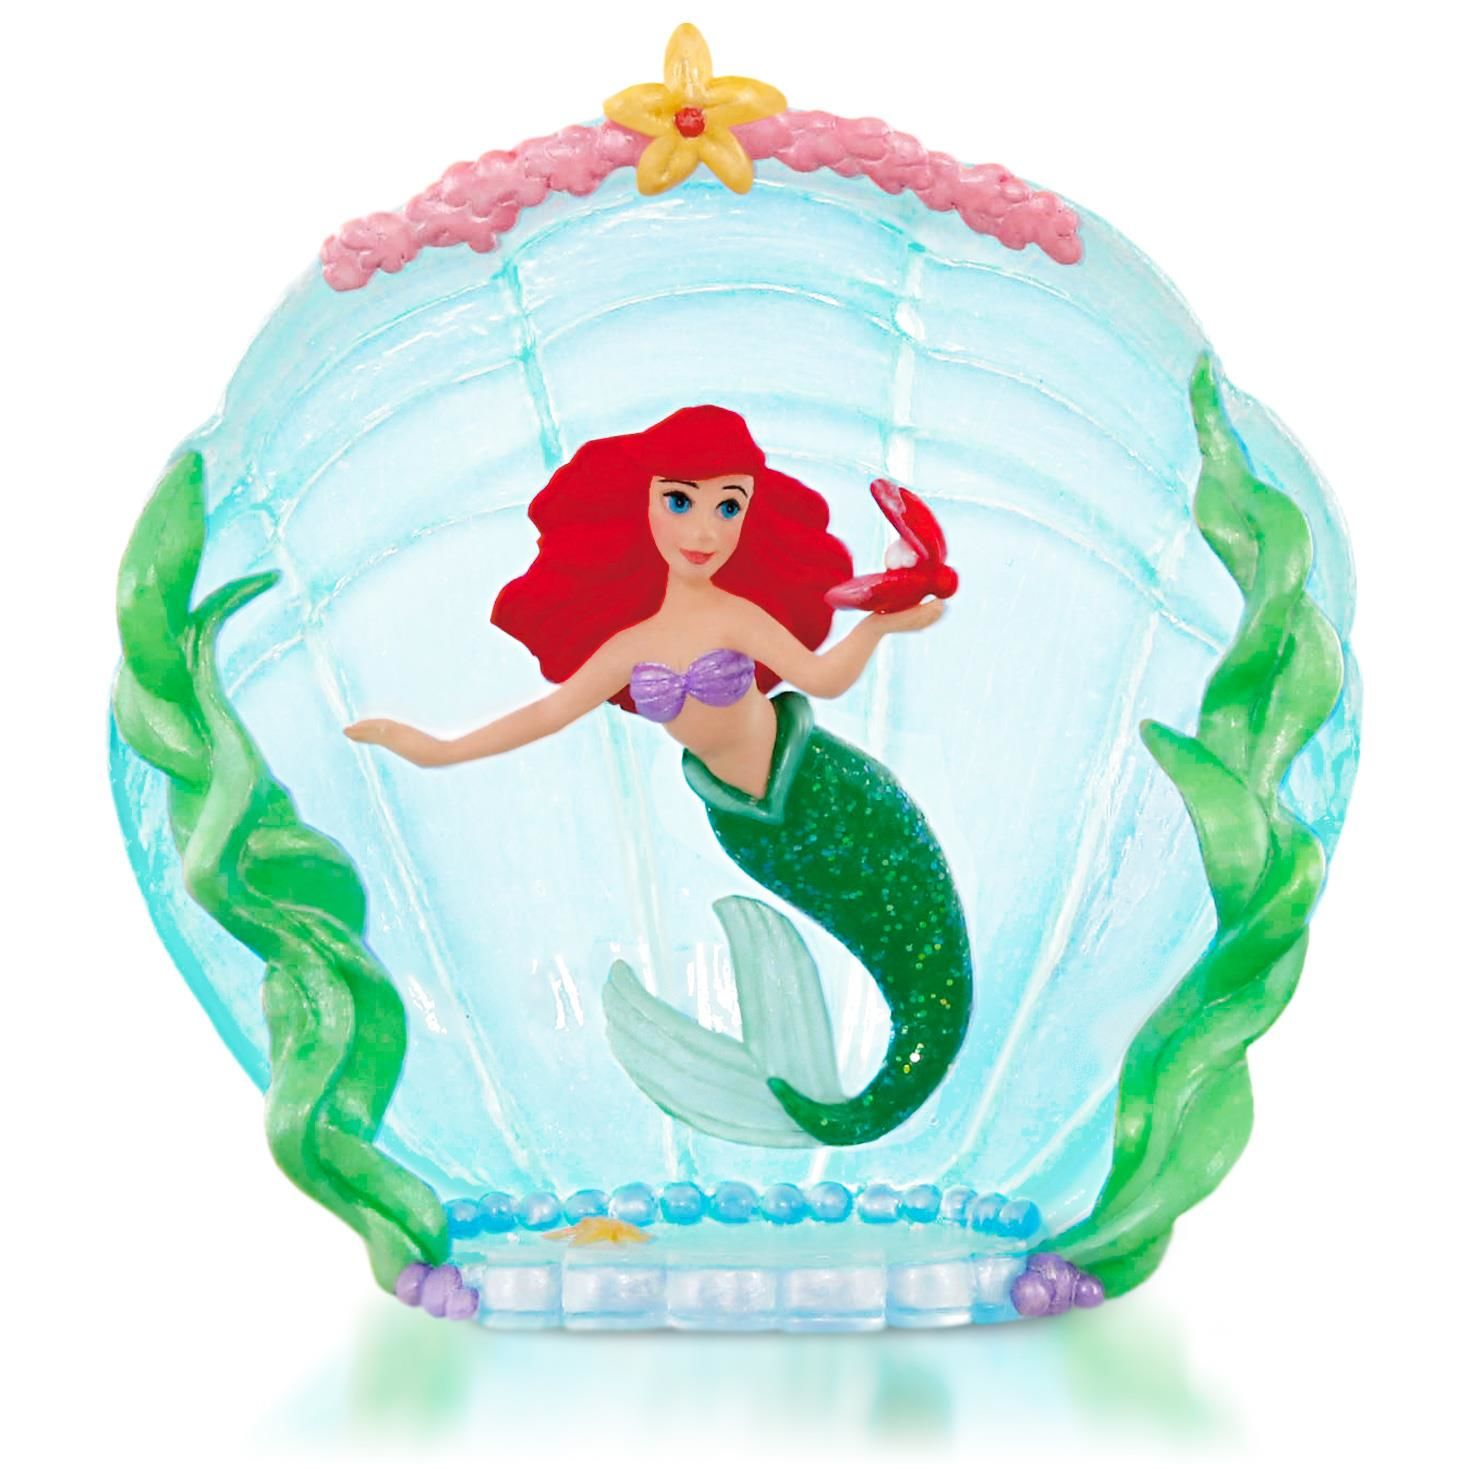 2015 Ariel's Thingamabobs Disney Hallmark Keepsake